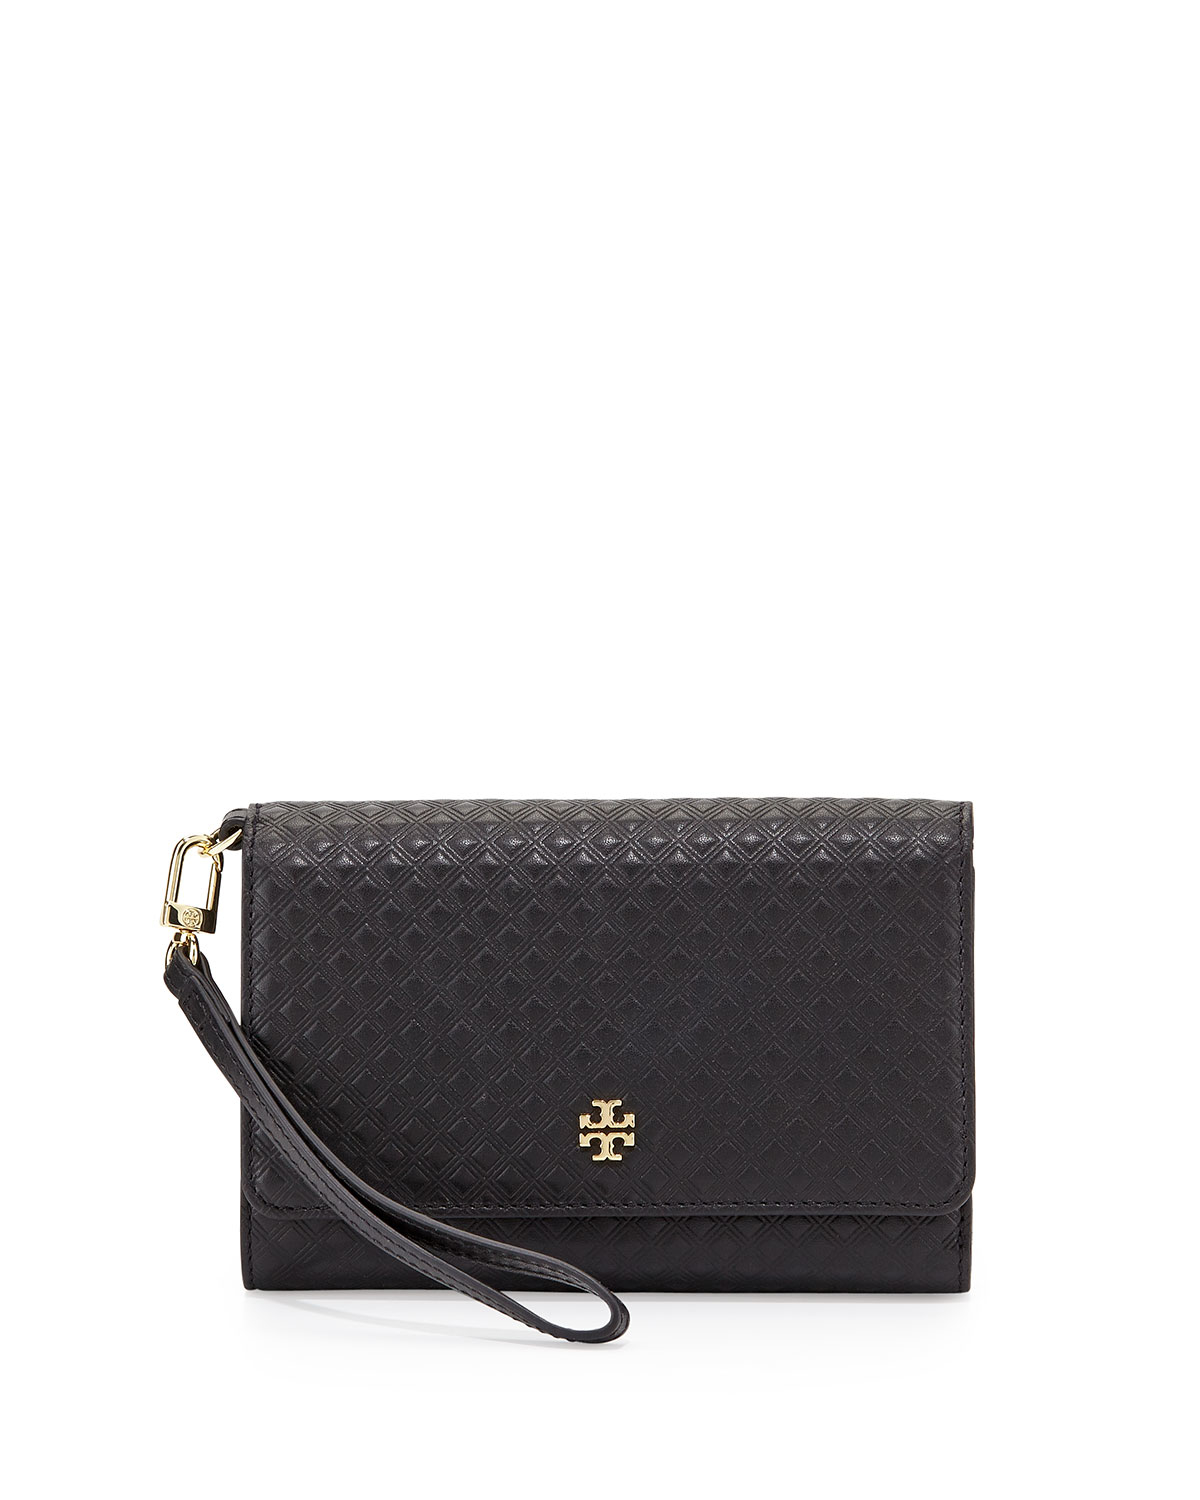 Tory burch Marion Quilted Leather Wristlet Wallet in Black   Lyst : quilted wristlet - Adamdwight.com